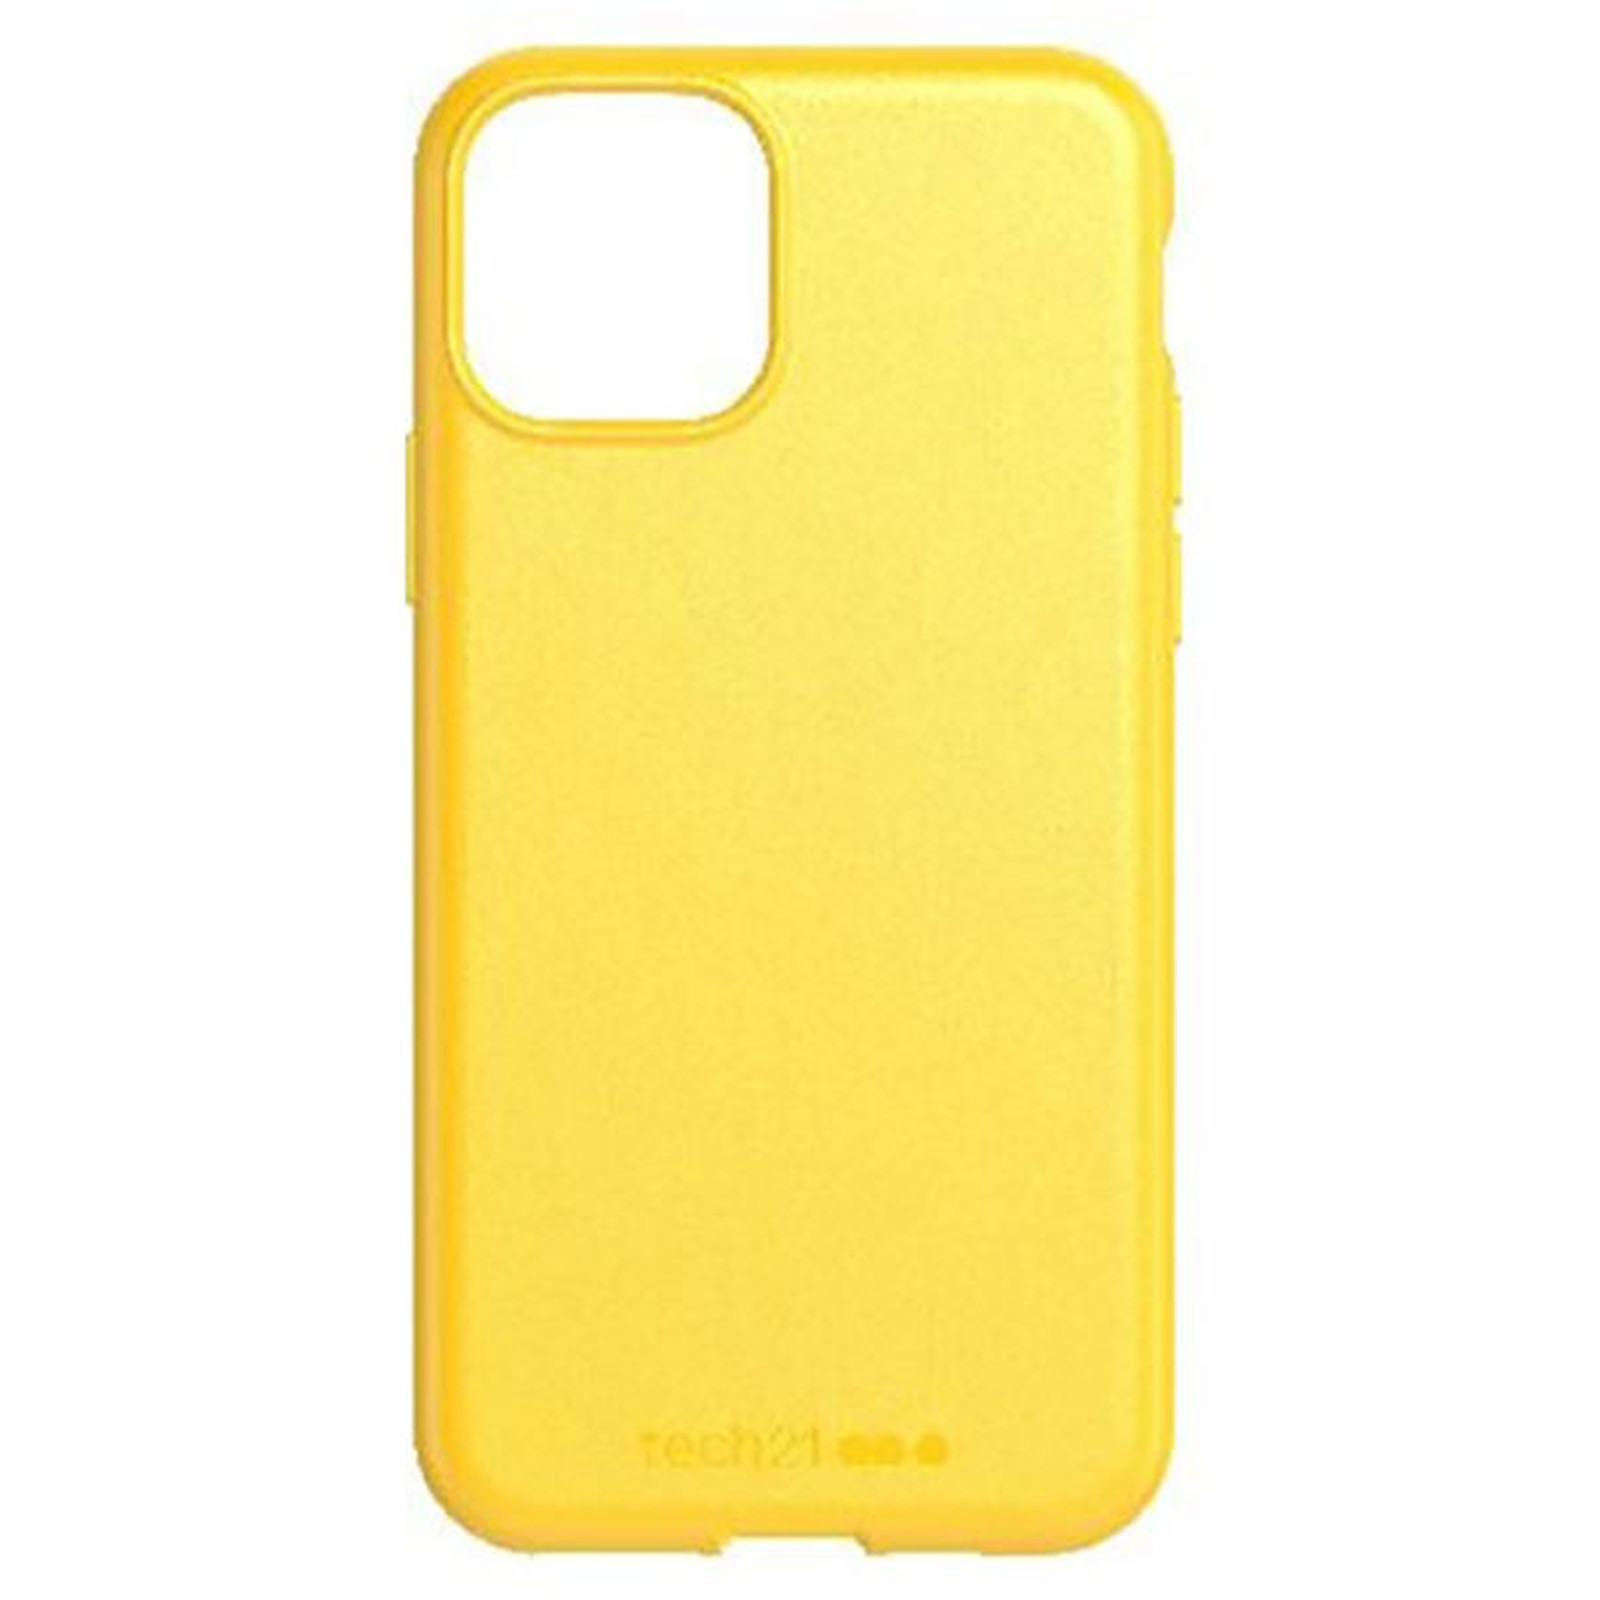 Tech21 Studio Colour Jaune Apple iPhone 11 Pro